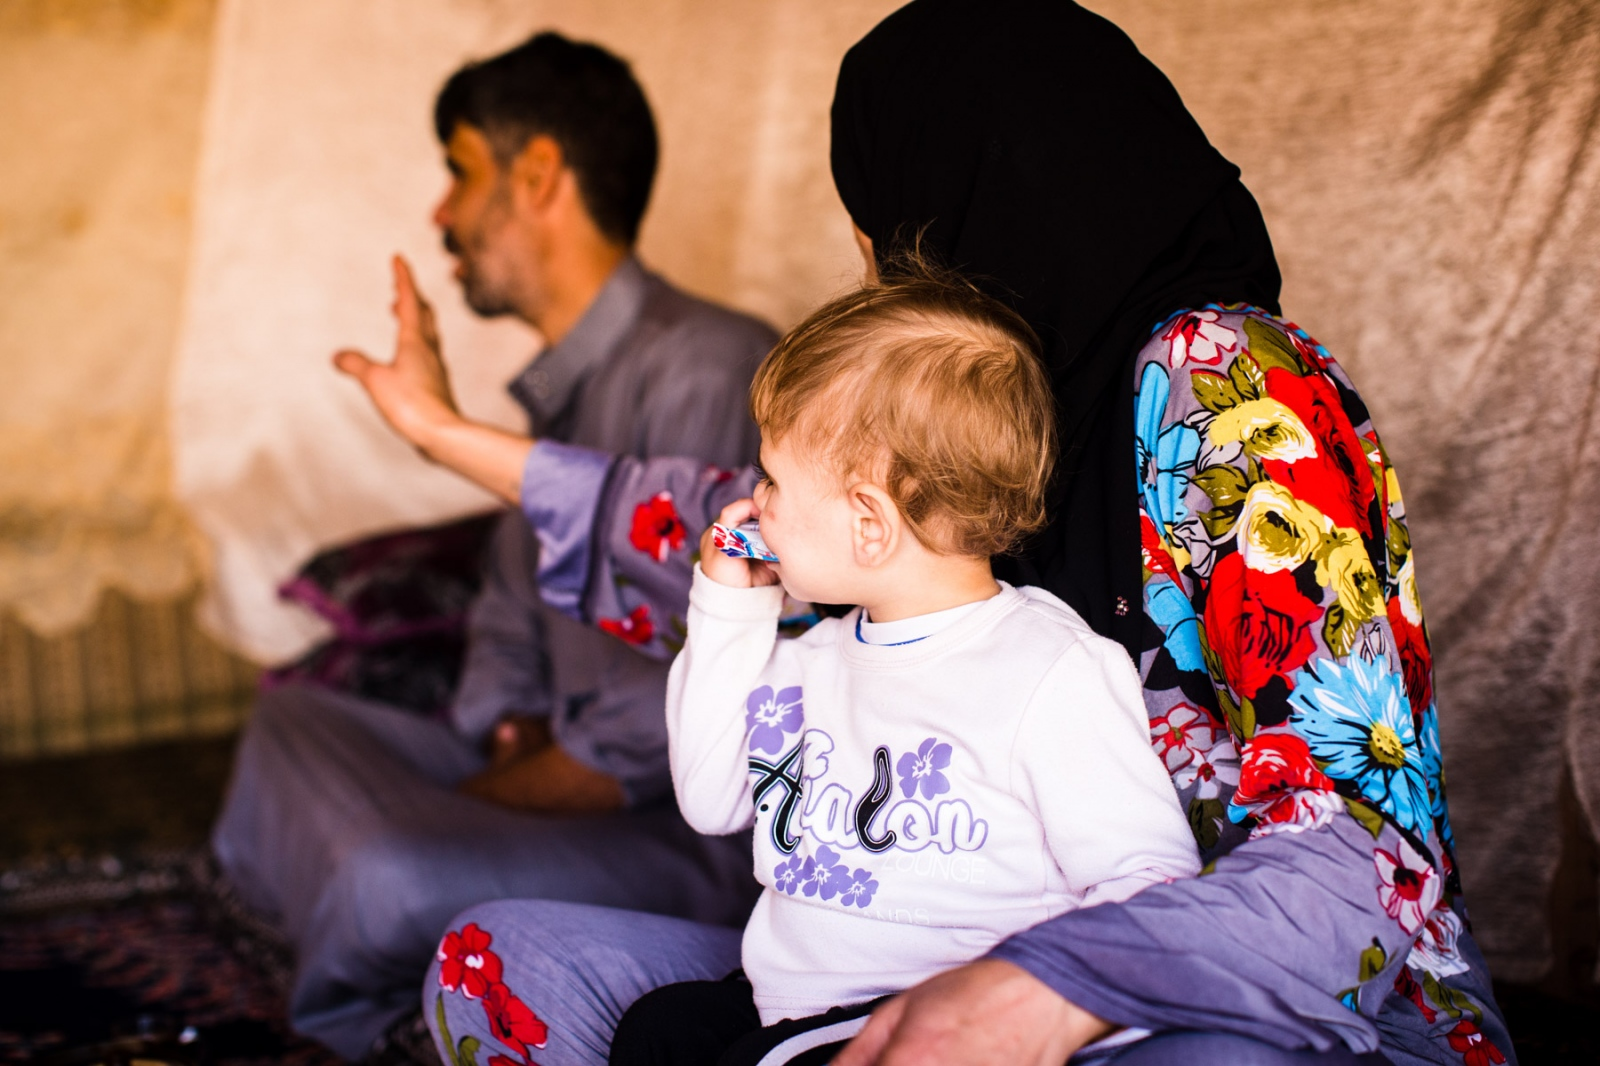 Dahham Al Obeid, 37, and his wife Kafaa, 32, sit with their son Sultan at home in Mafraq, Jordan, on Nov. 4, 2016. The Al Obeid family fled Homs, Syria five years ago, and since then have been living on their own in a tent just outside Zaatari Refugee Camp in Mafraq, Jordan. The family receives 50 Jordanian dinars in food vouchers, and receives little other assistance.